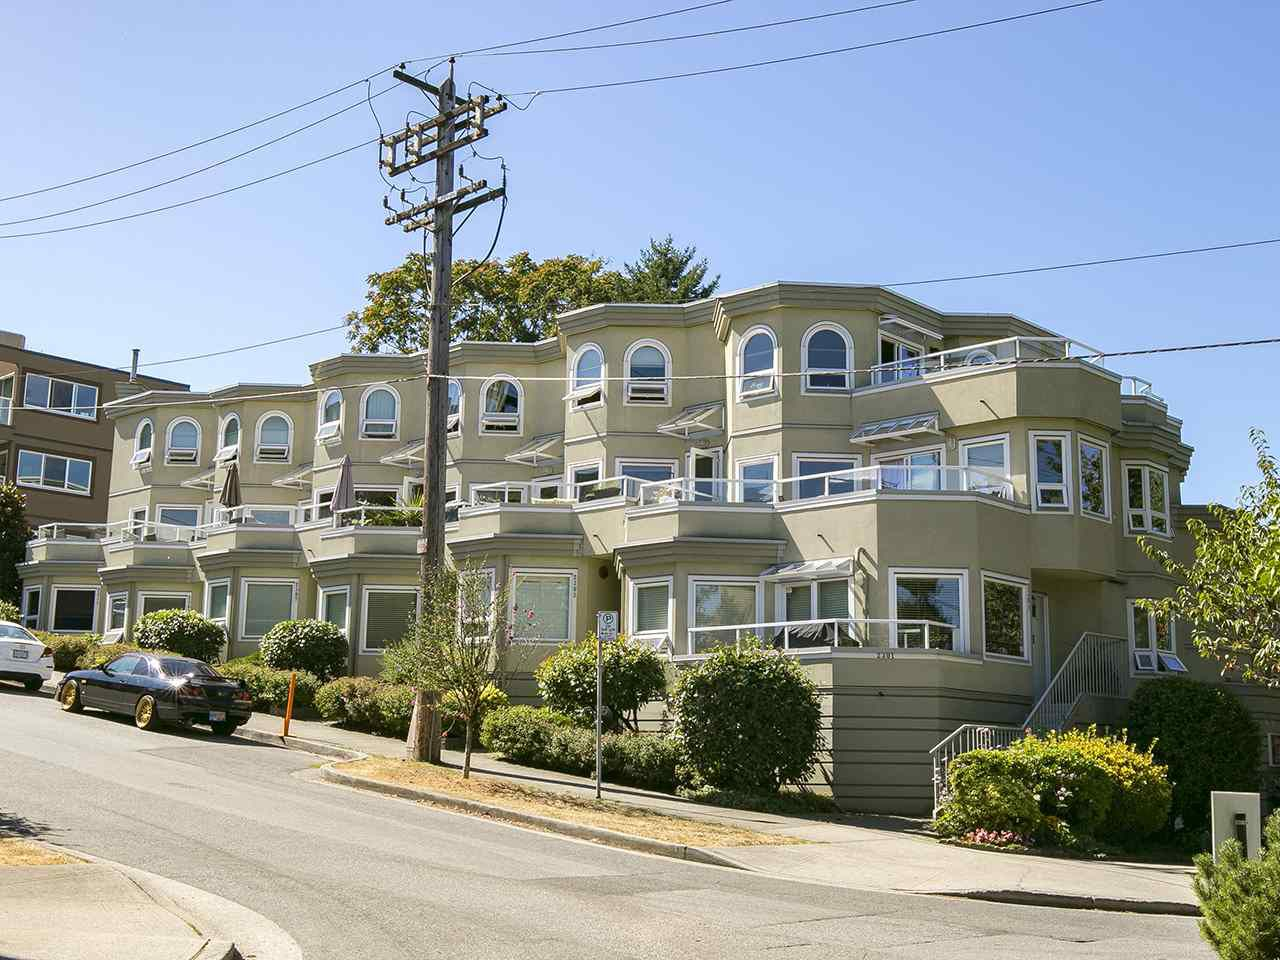 "Main Photo: 1206 W 7TH Avenue in Vancouver: Fairview VW Condo for sale in ""Alderwood Place"" (Vancouver West)  : MLS®# R2202168"